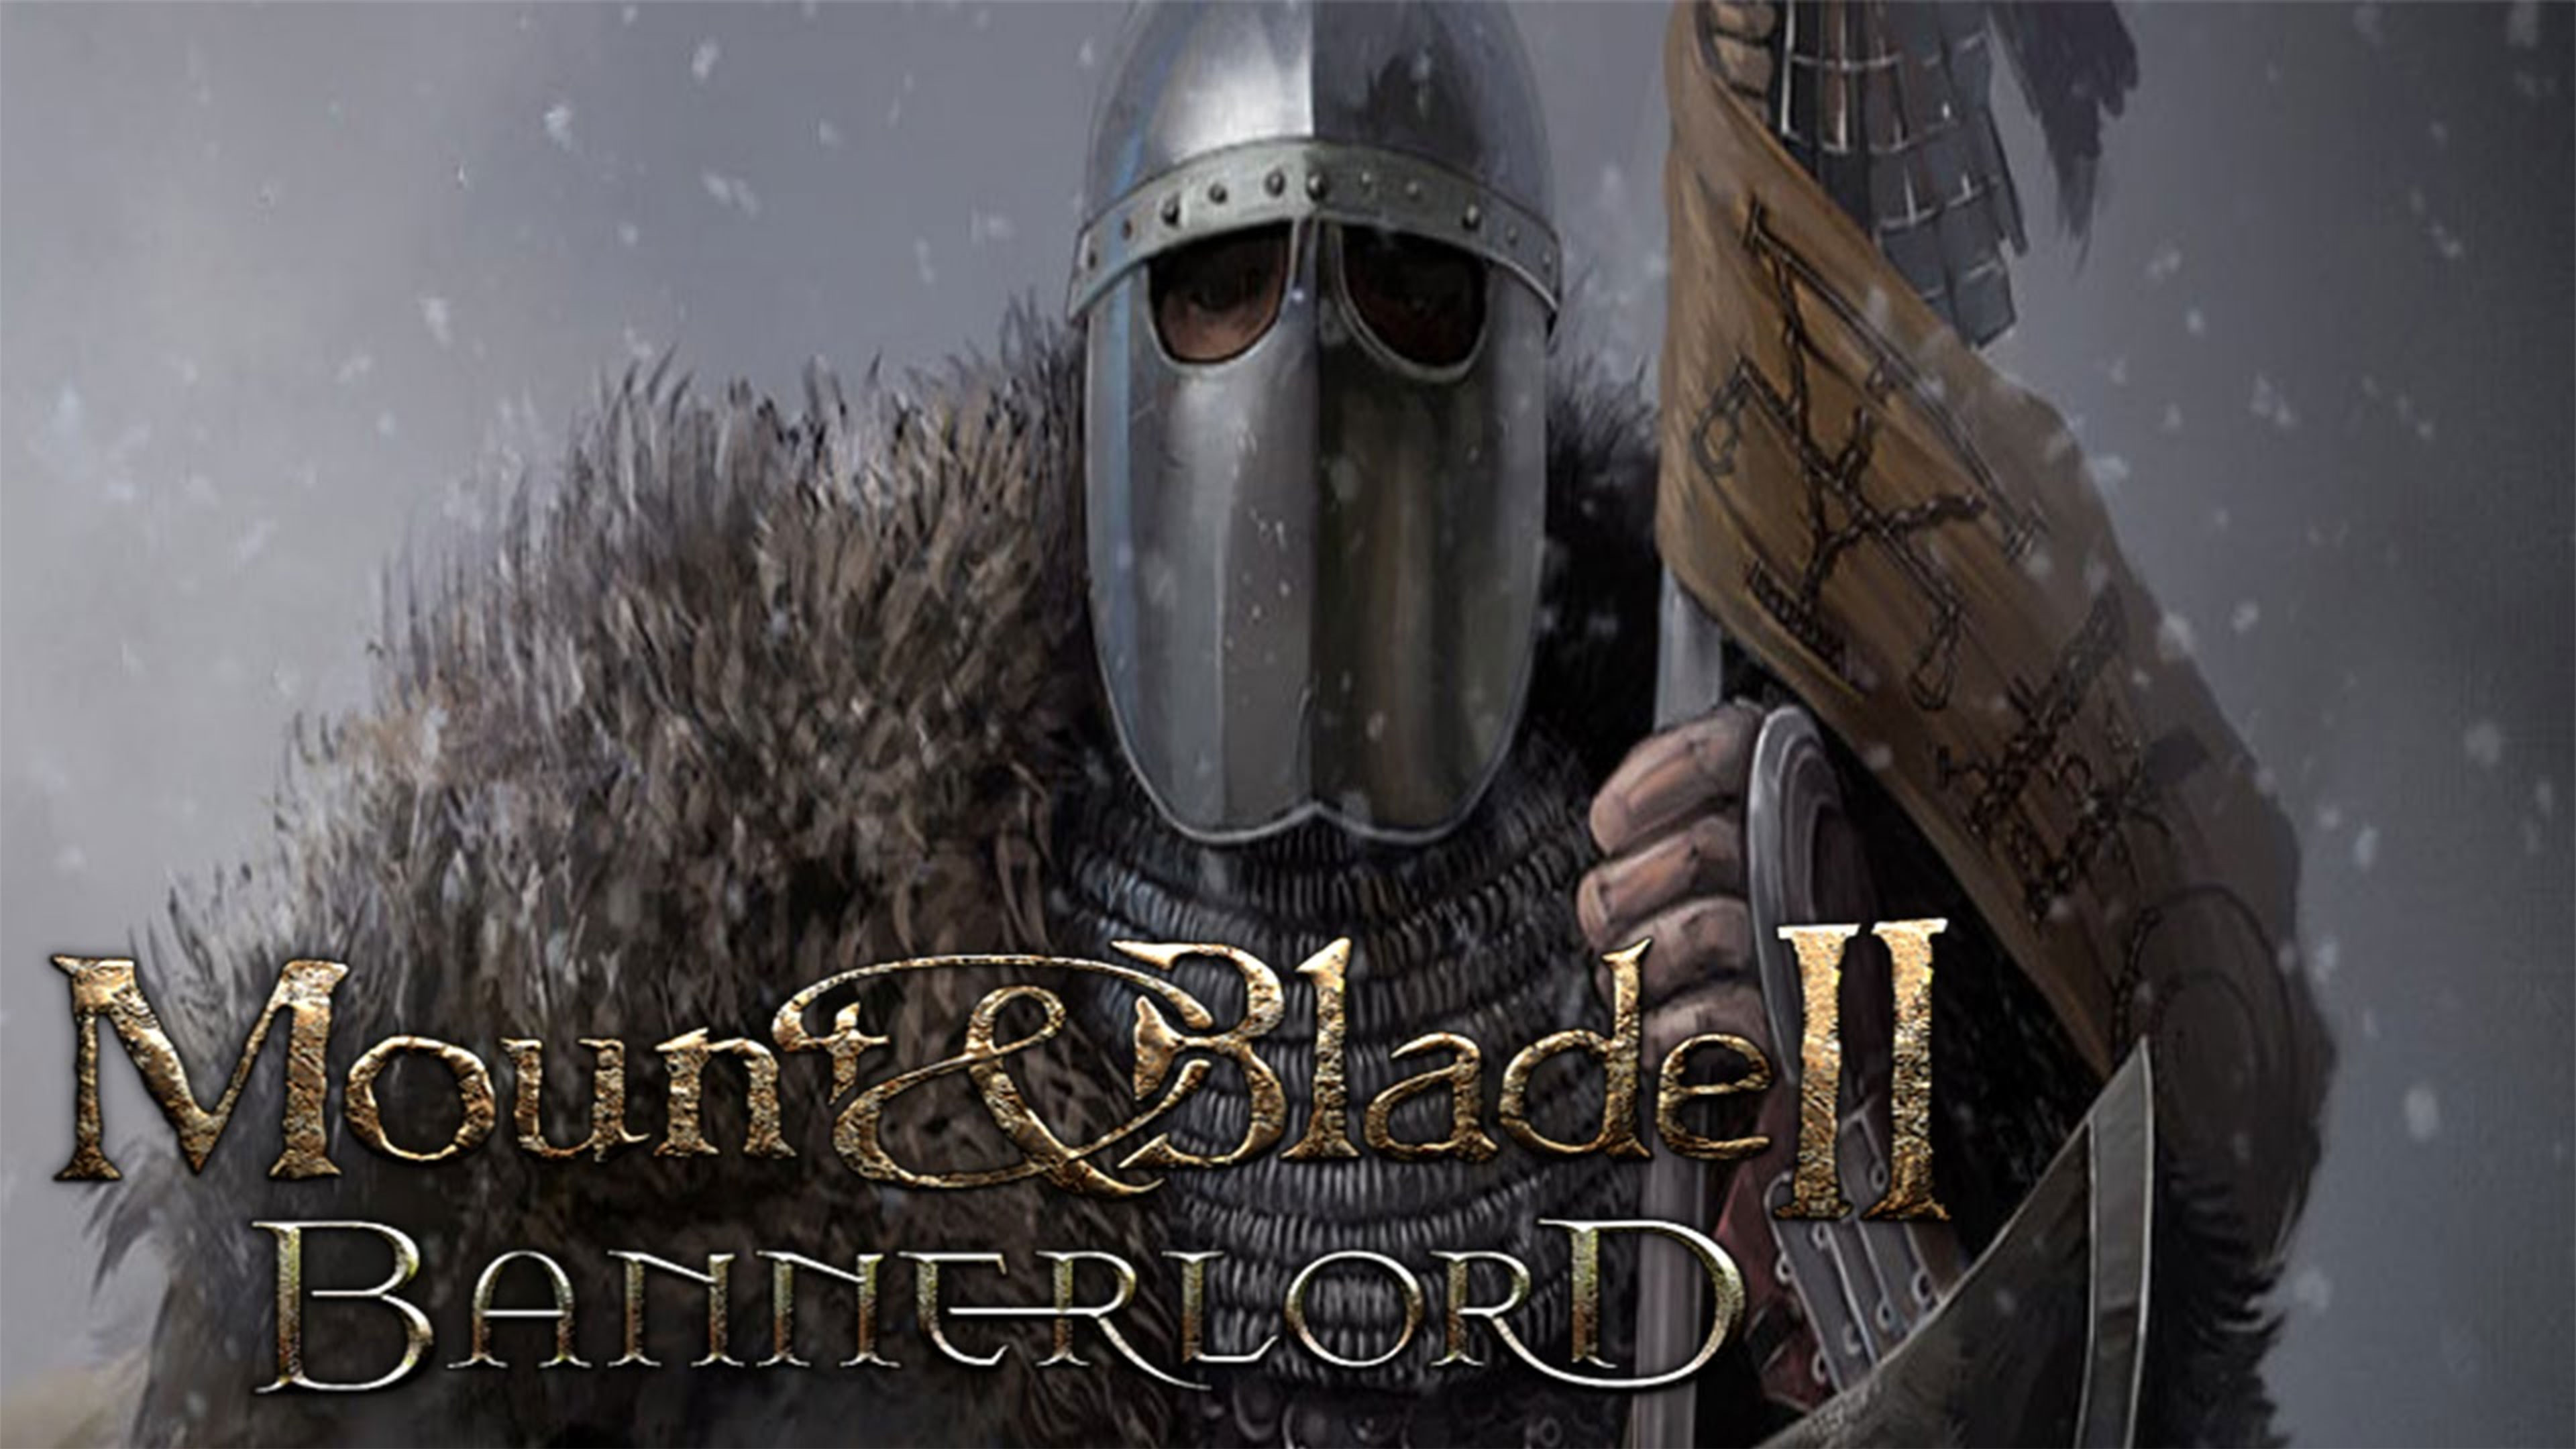 Mount Blade 2 Bannerlord Wallpapers In Ultra Hd 4k